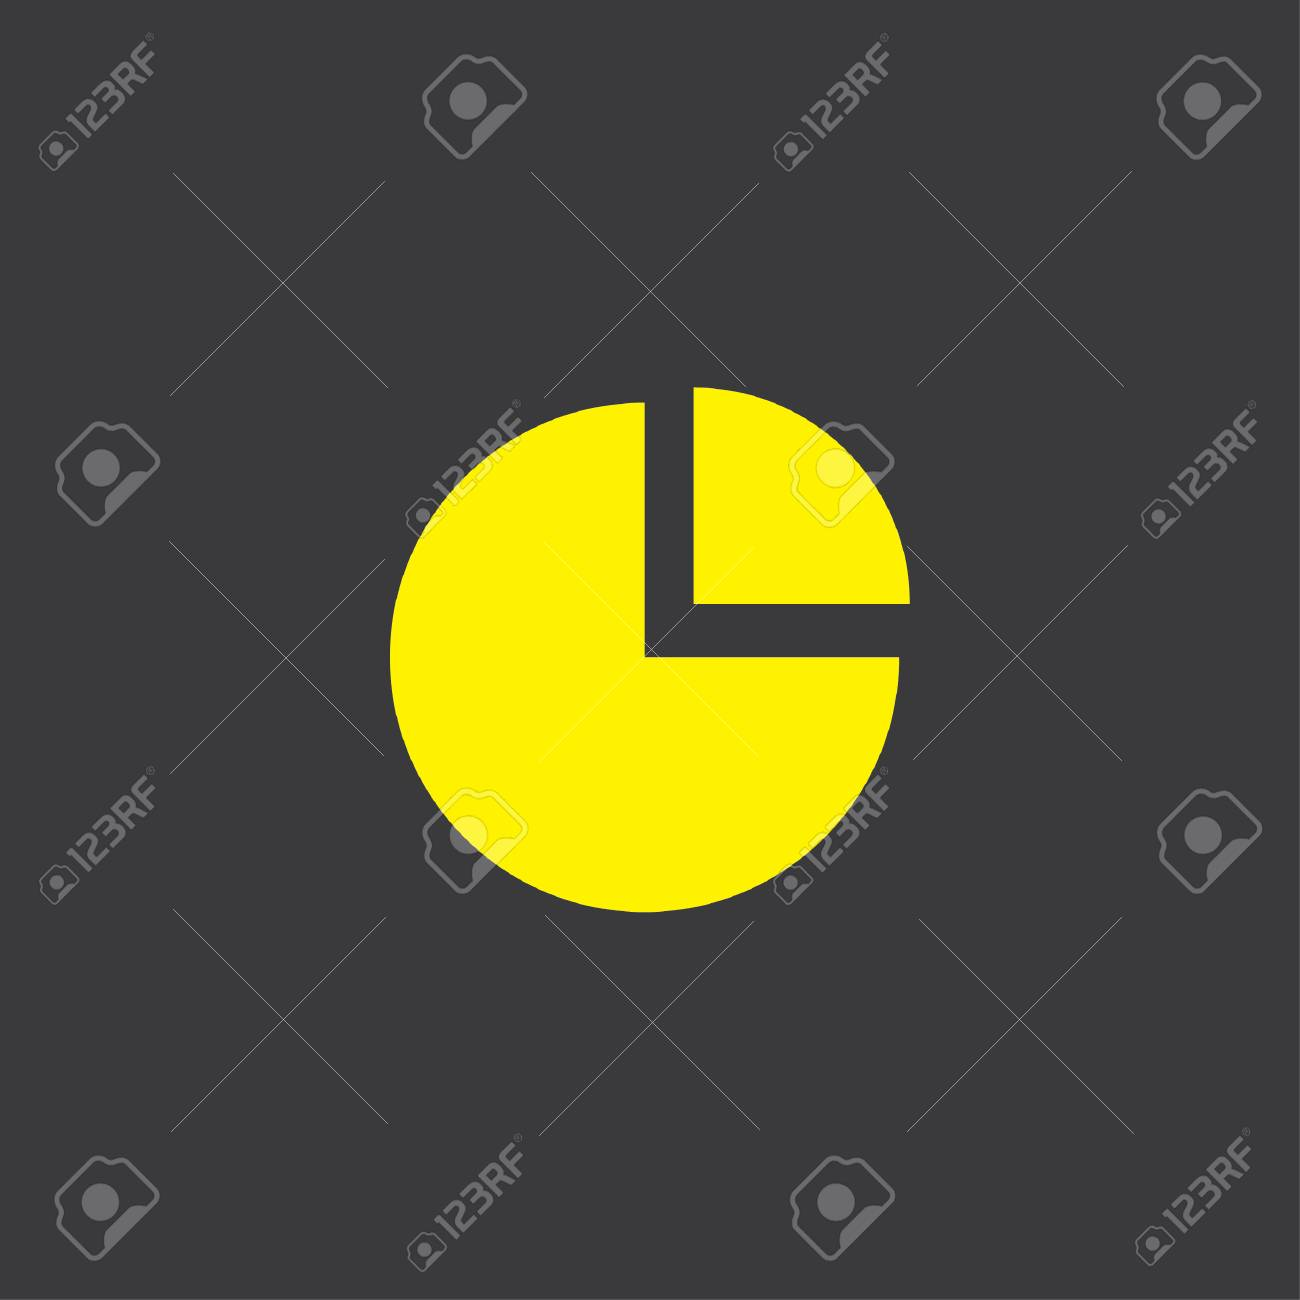 A yellow icon isolated on a grey background pie chart exploded a yellow icon isolated on a grey background pie chart exploded stock photo 45609521 nvjuhfo Image collections